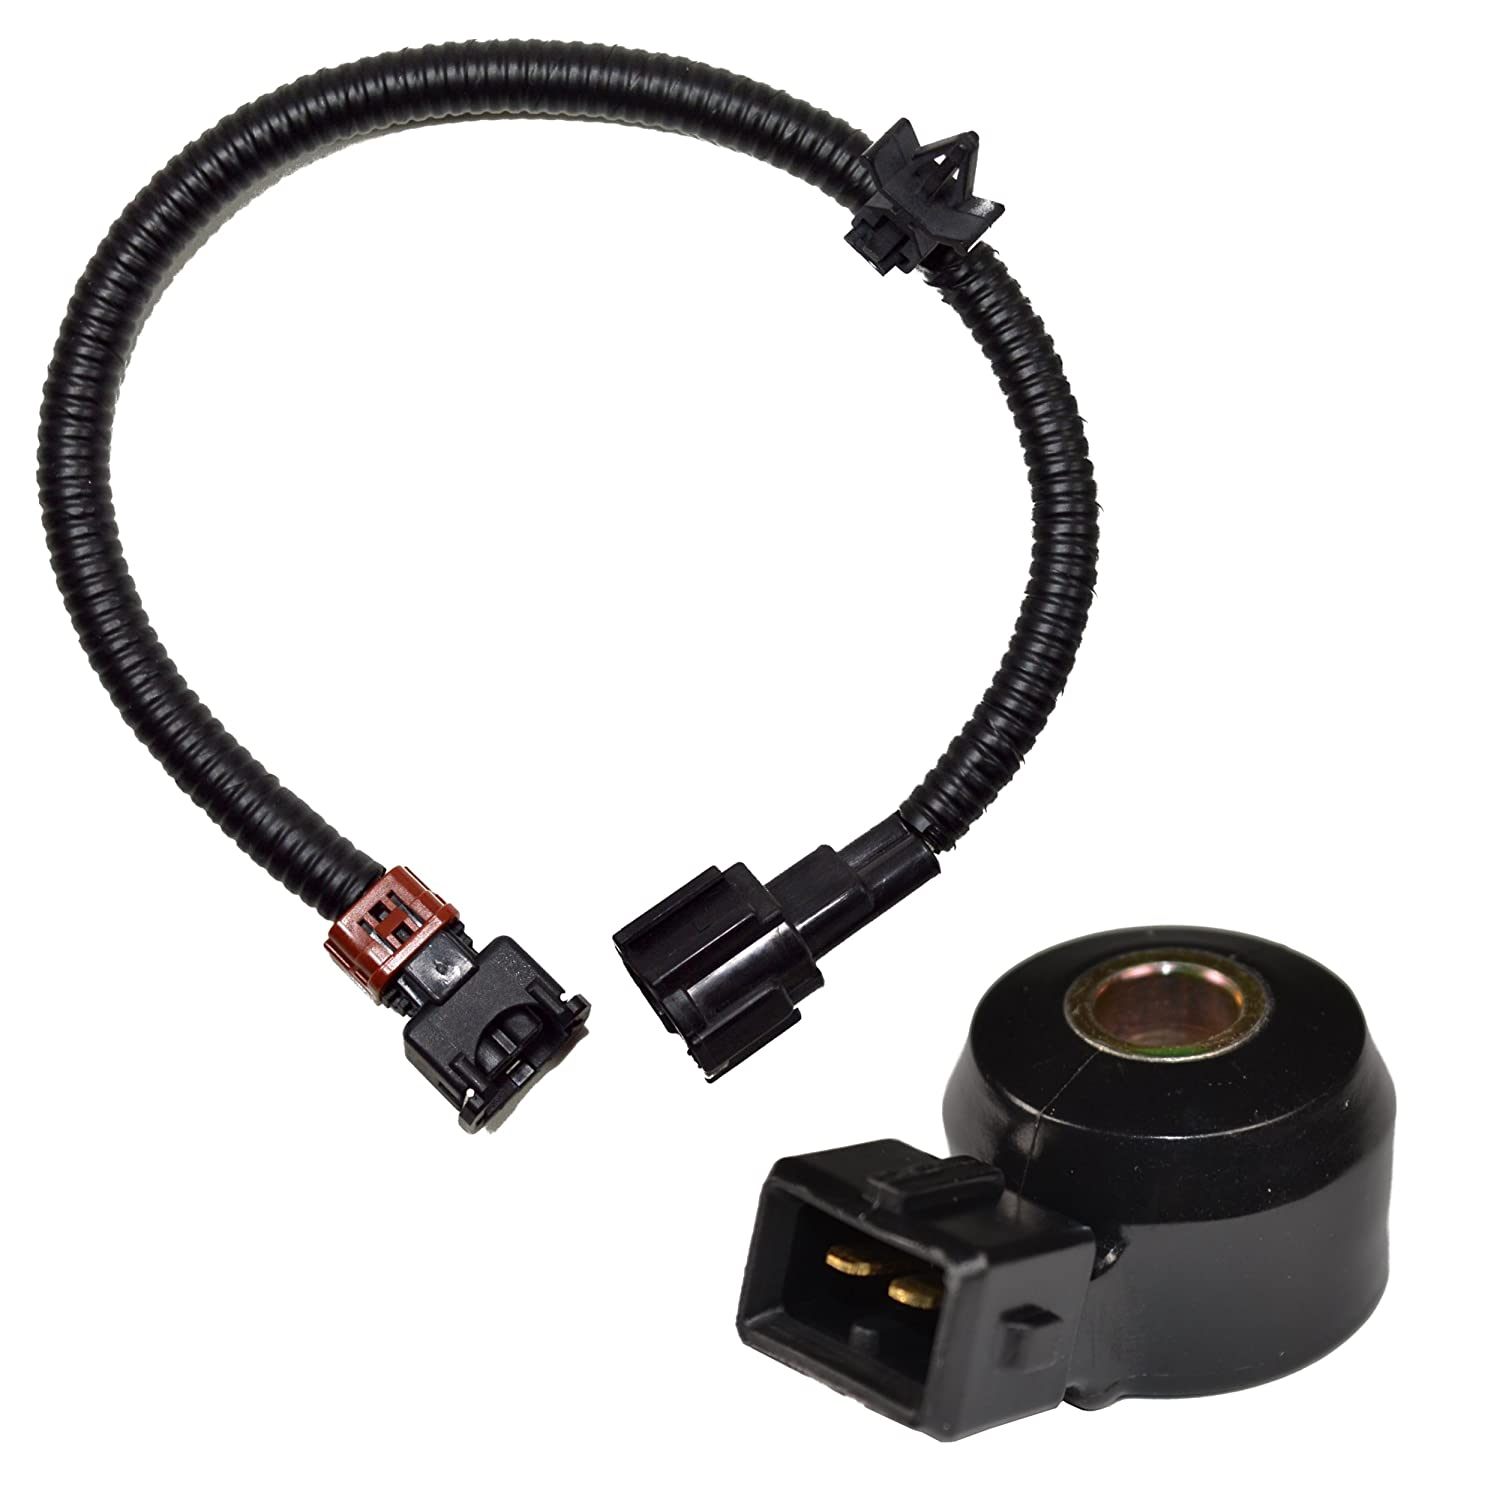 81n2NnpuFPL._SL1500_ amazon com hqrp knock sensor w wiring harness for nissan 200sx 2004 Nissan 350Z Knock Sensor Sub Harness Wire Diagram Cornect at eliteediting.co